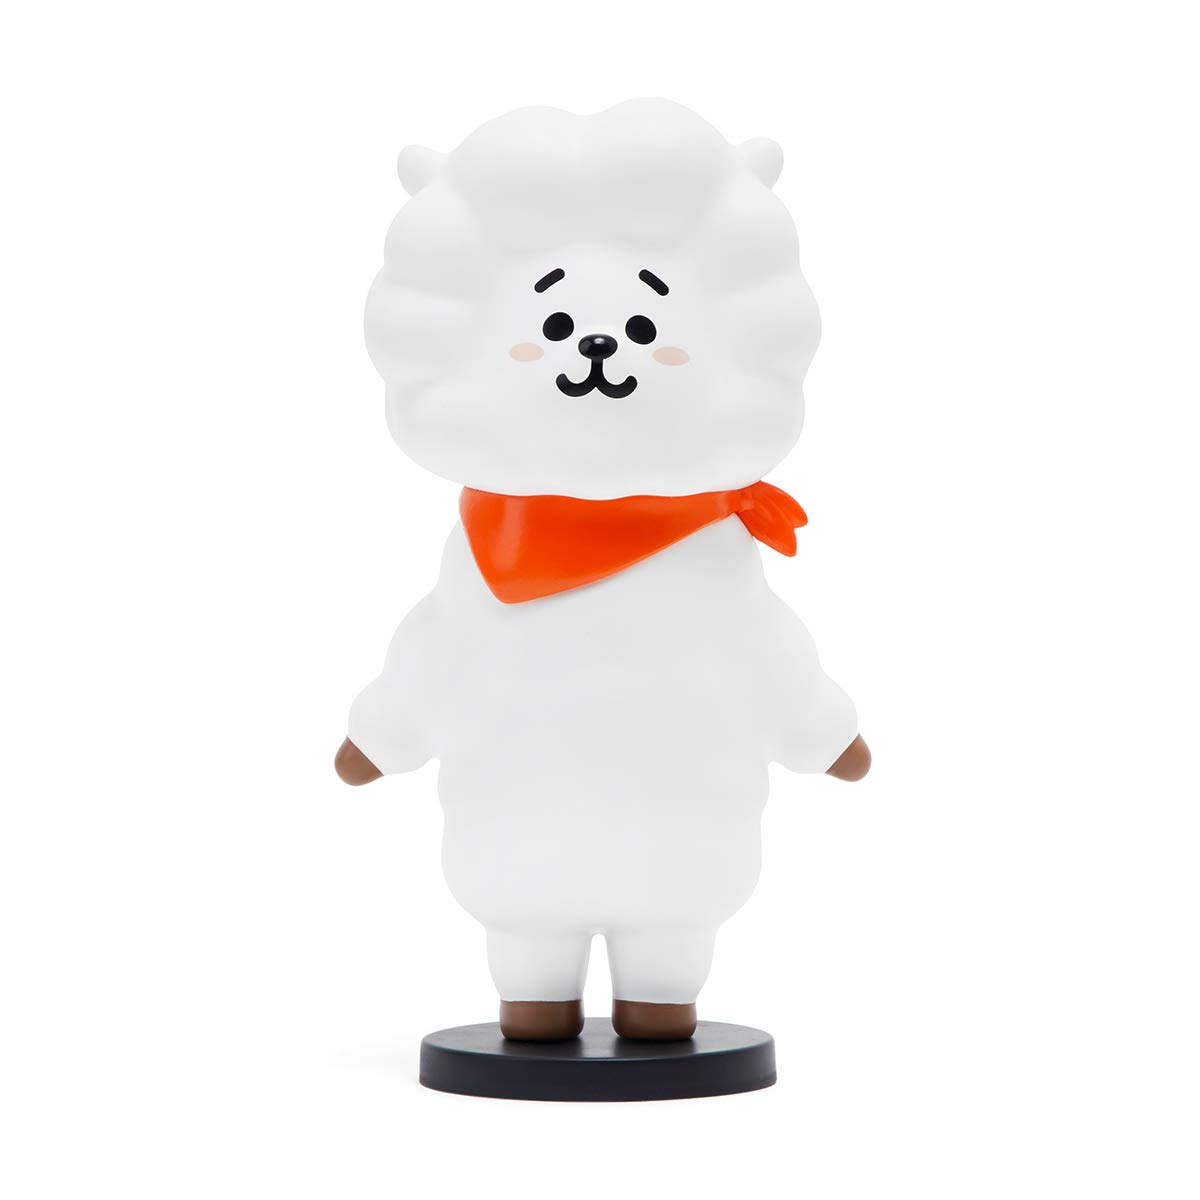 Grey Van Character Action Figure Toy Collectible Doll 4 Inch BT21 Official Merchandise by Line Friends